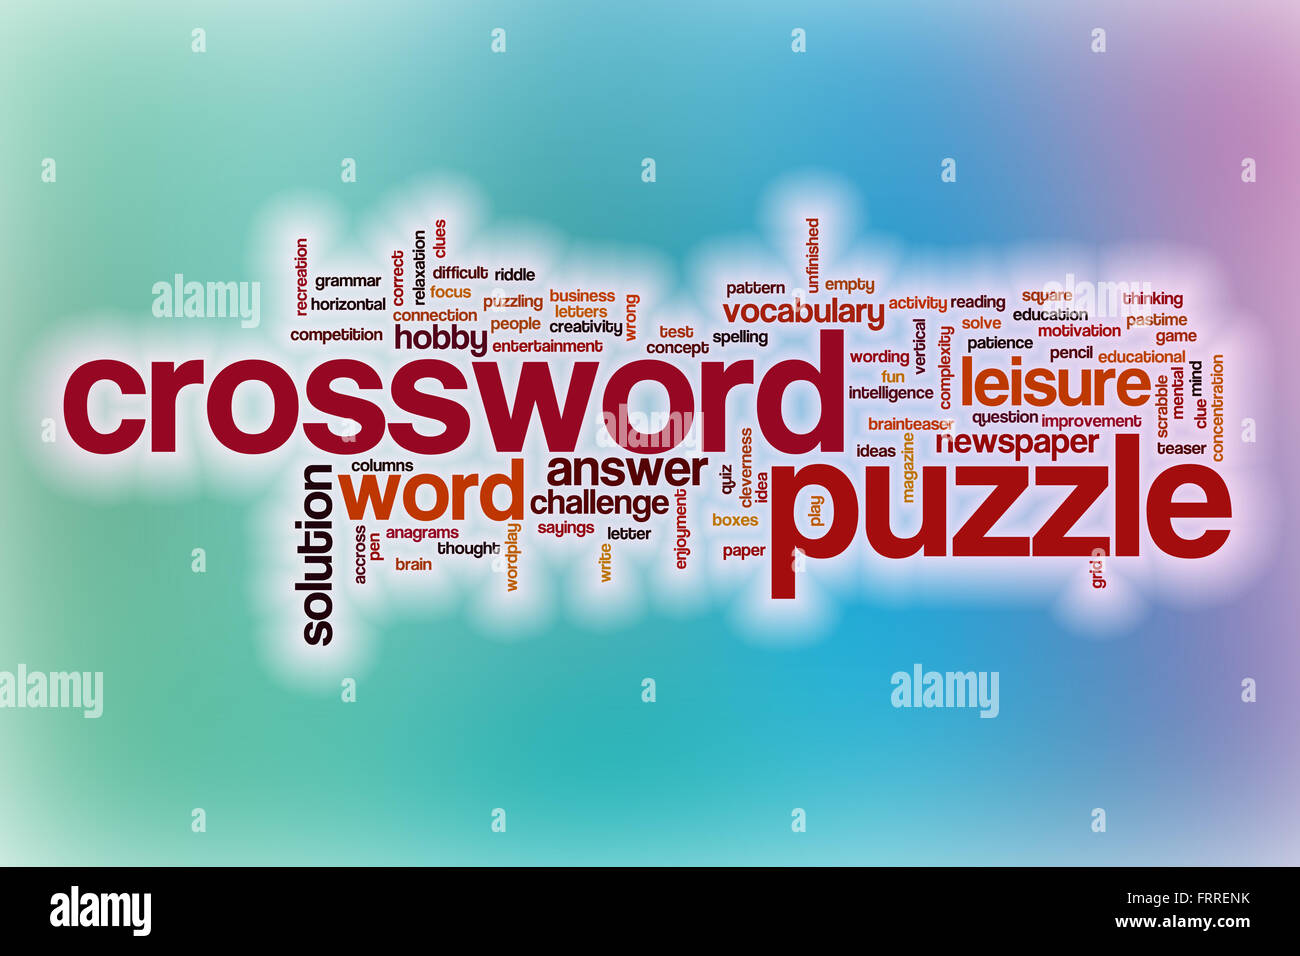 Crossword Puzzle Word Cloud Concept With Abstract Background